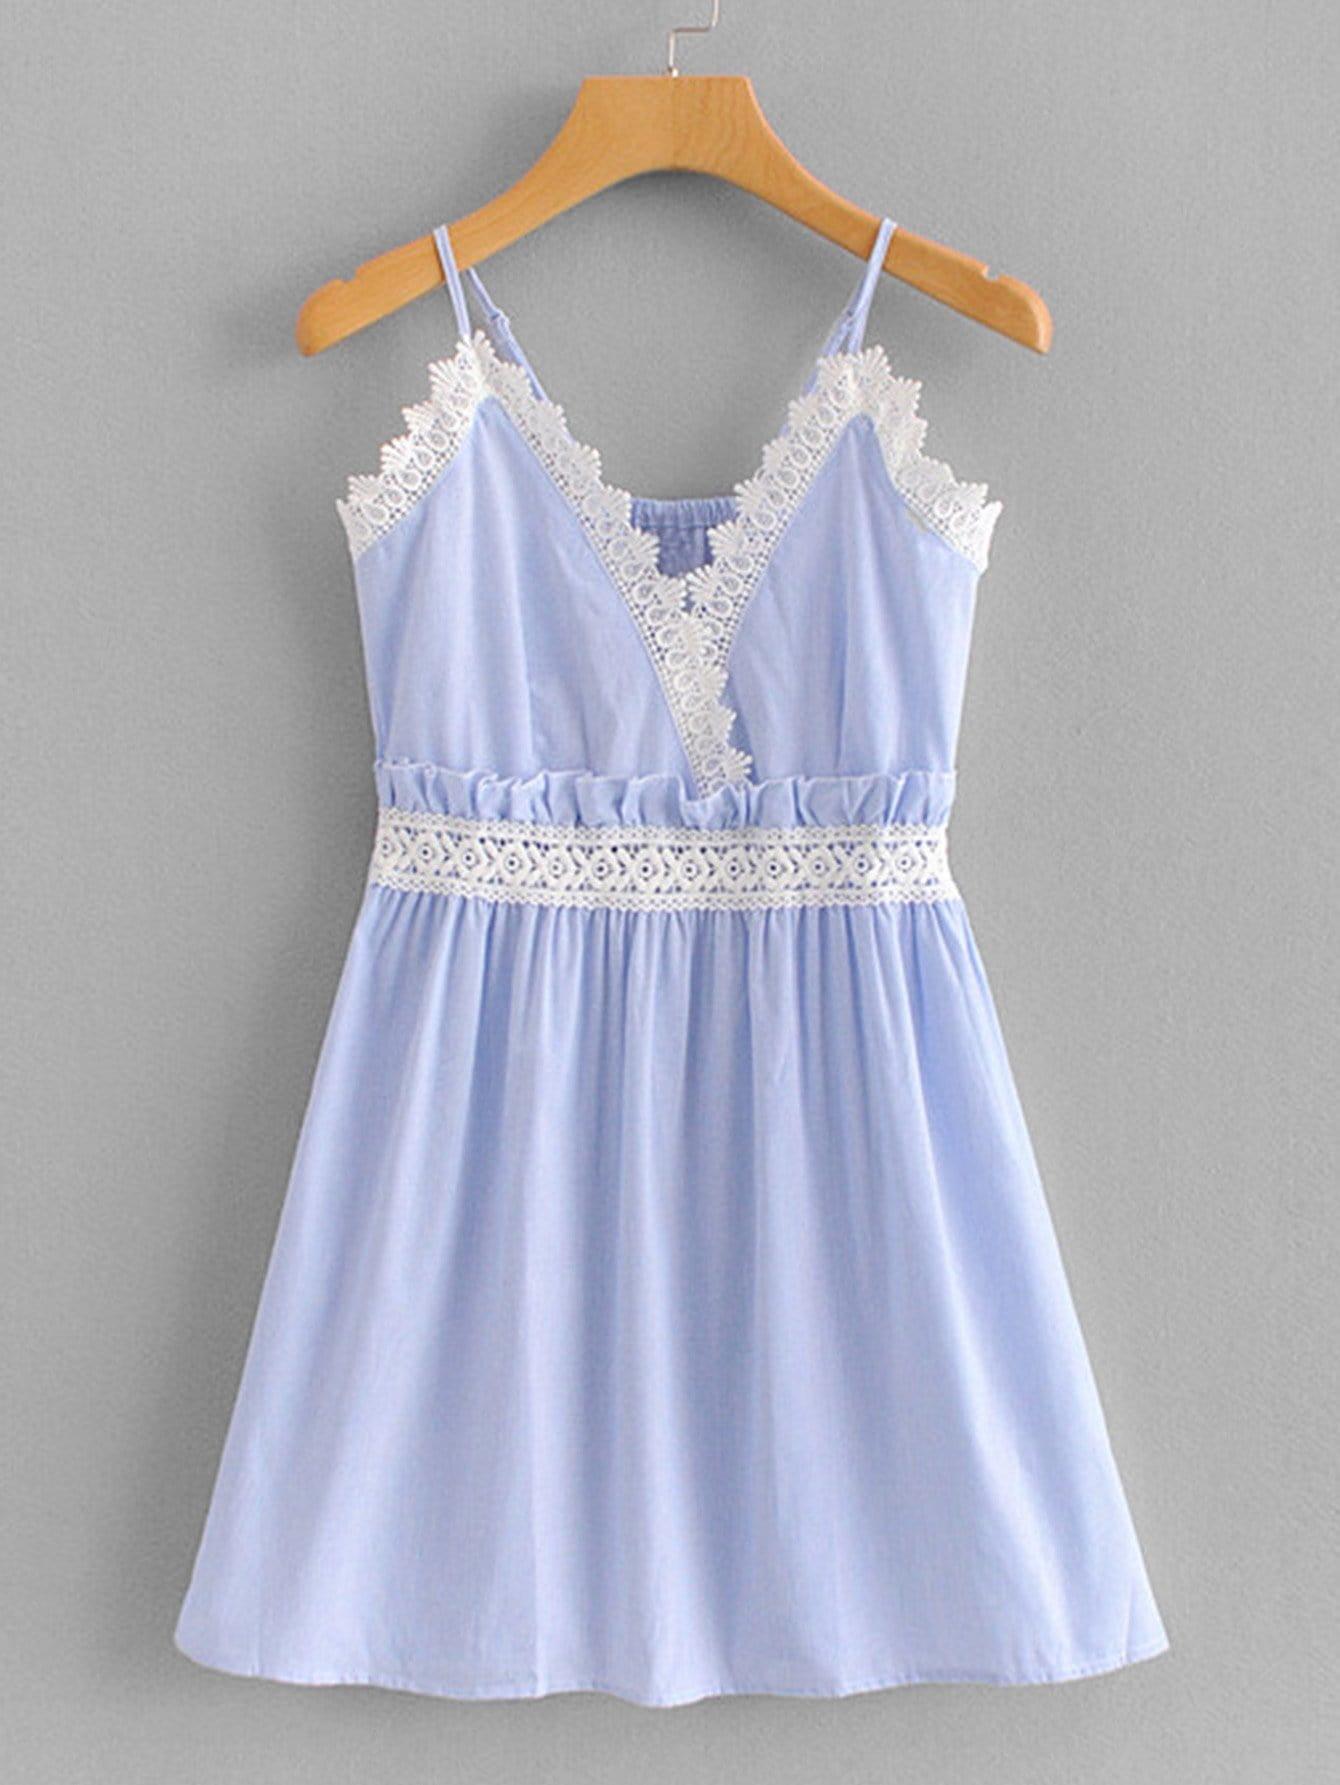 Contrast Lace Frill Trim Cami Dress